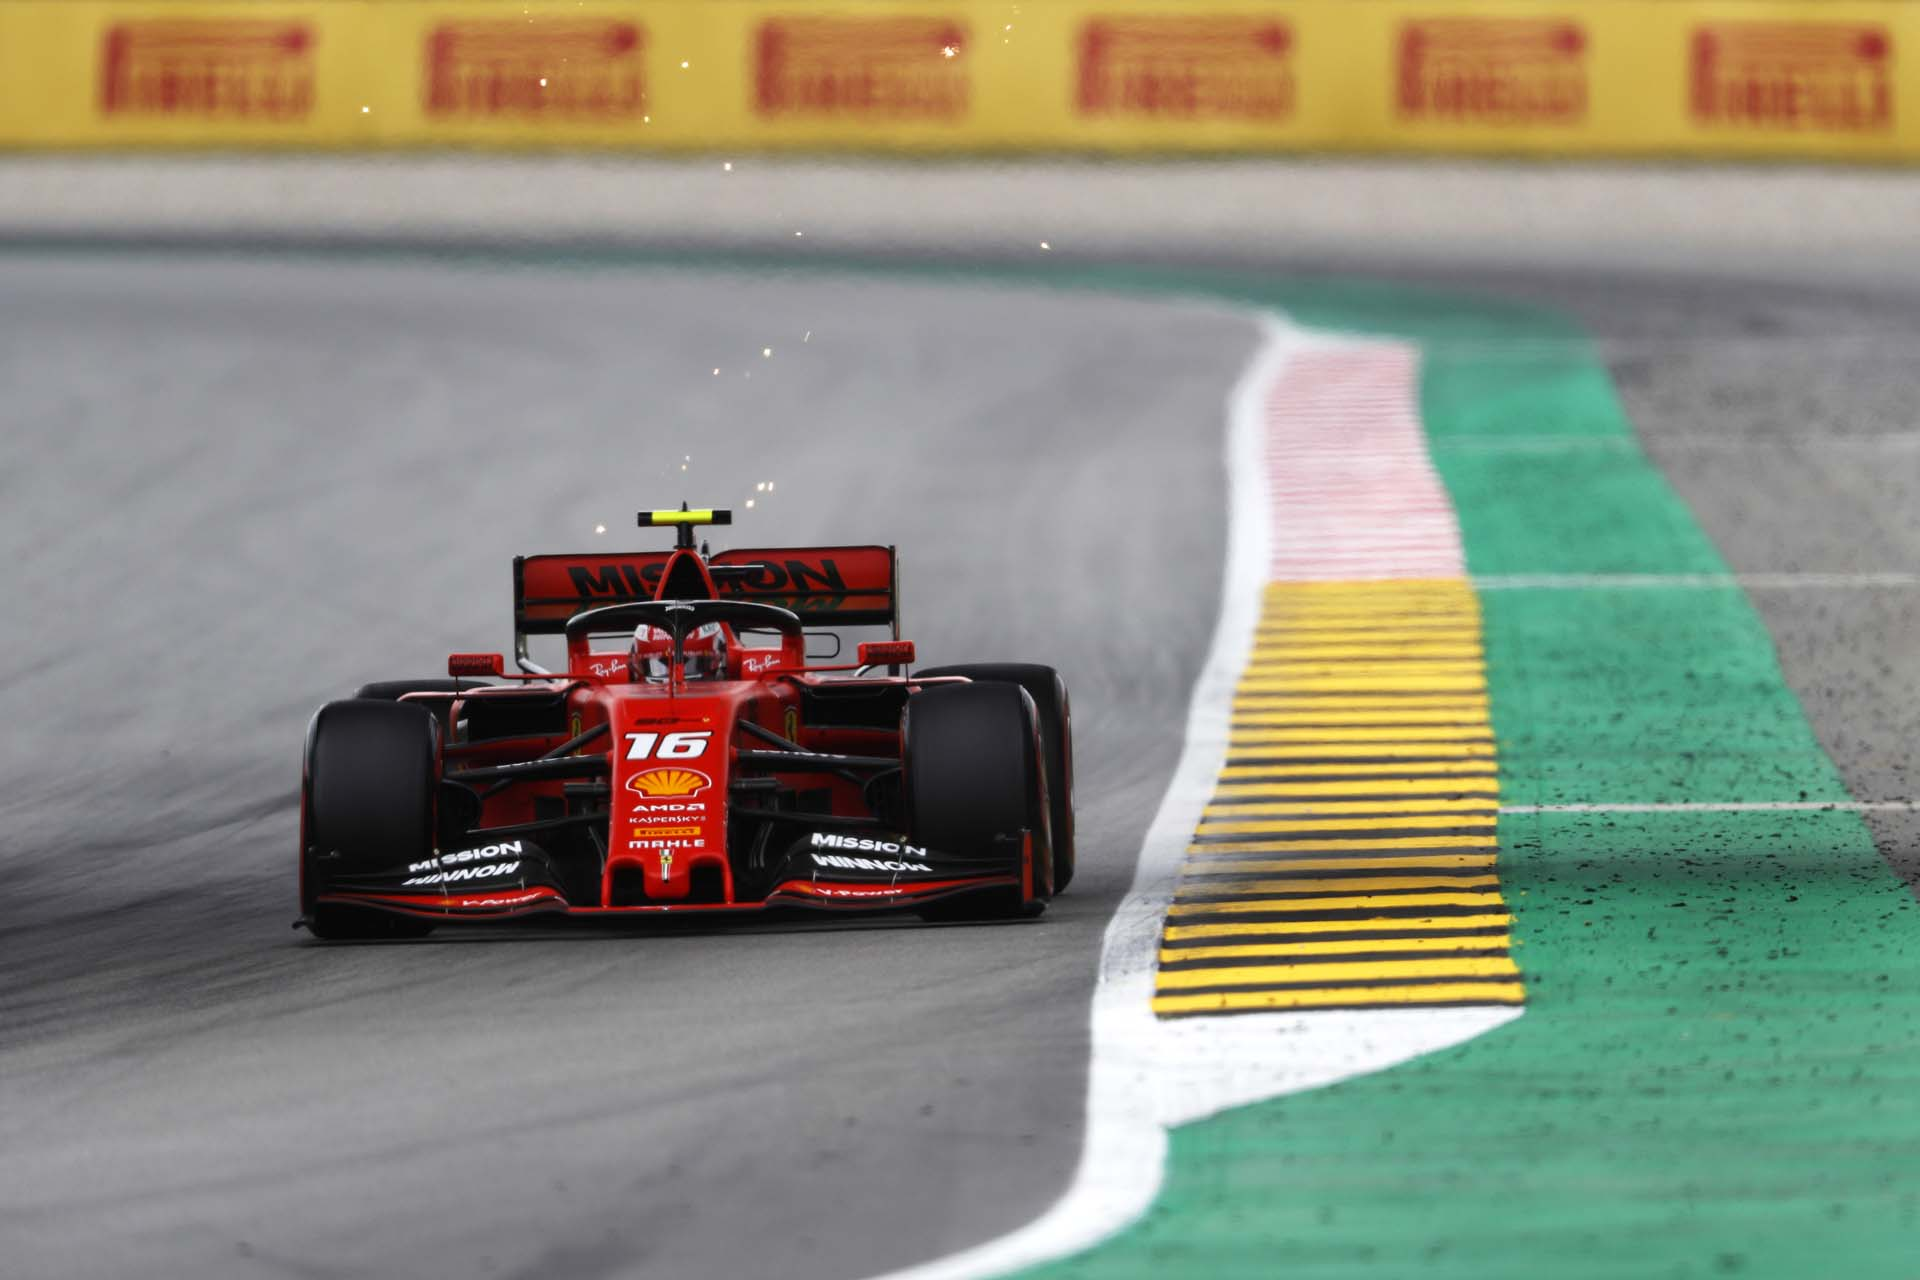 SpanishGP2019_SAT_Pirelli_barcelonasaturday3-114144